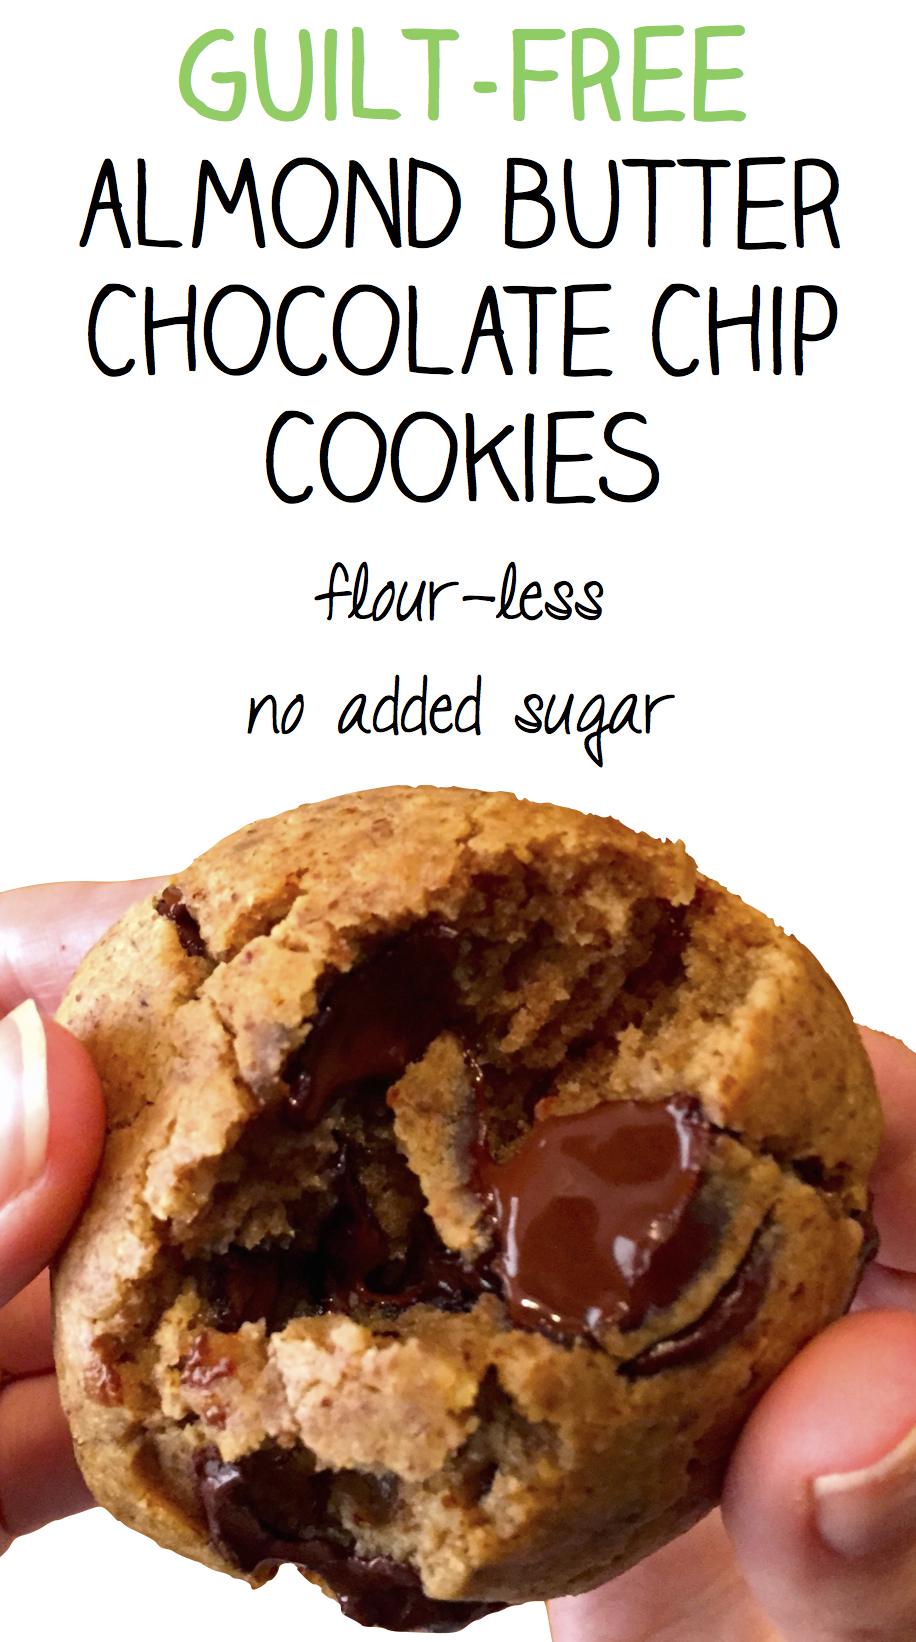 Almond Butter Chocolate Chip Cookies - The Soccer Mom Blog